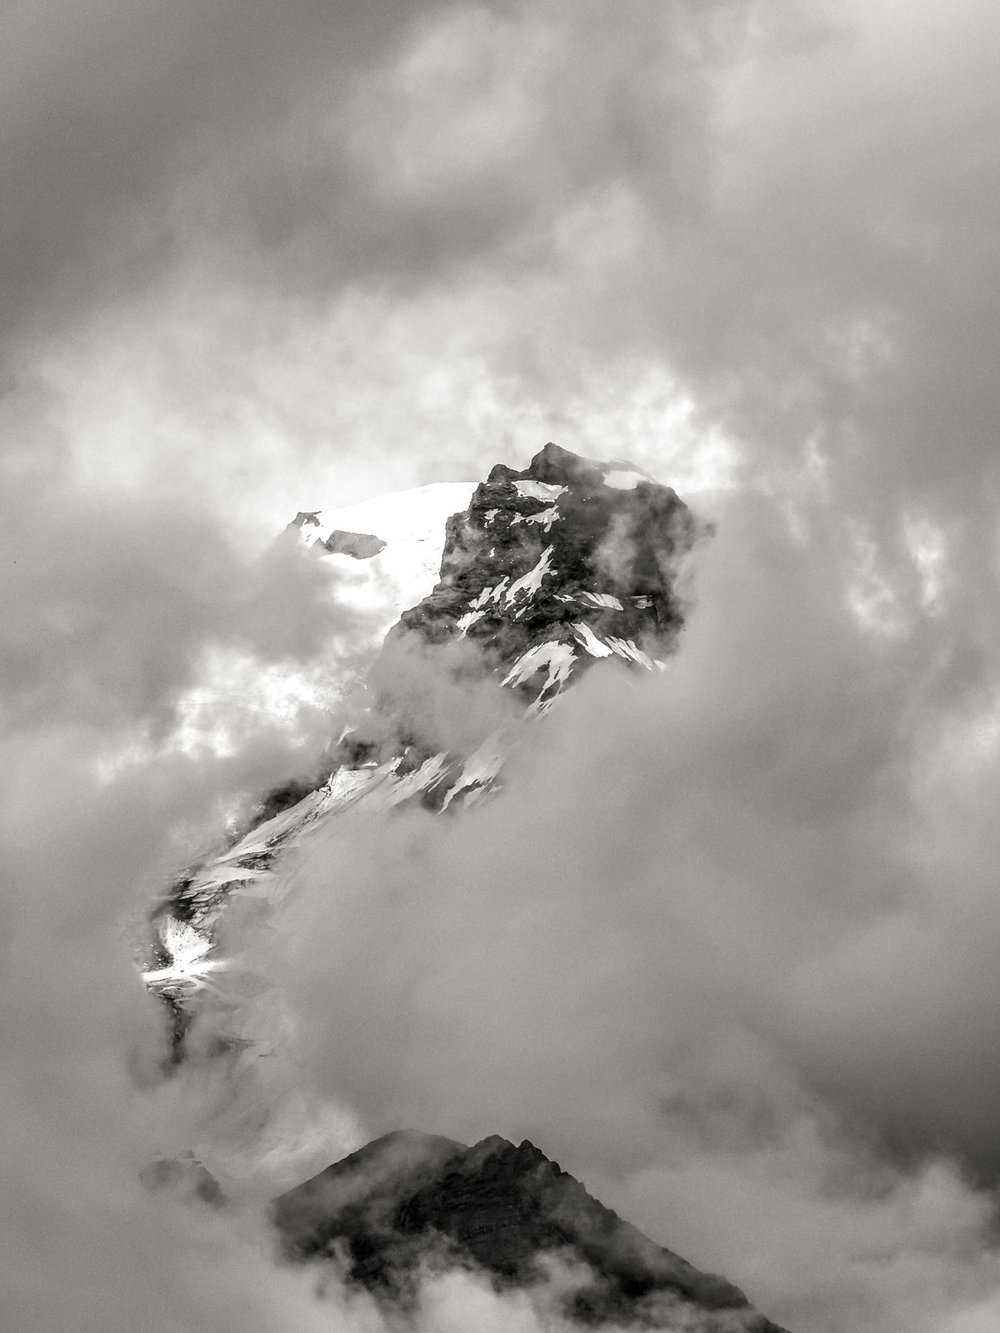 through the clouds (XF 50-140mm f2.8 at 140mm 1/250 f8 ISO200)